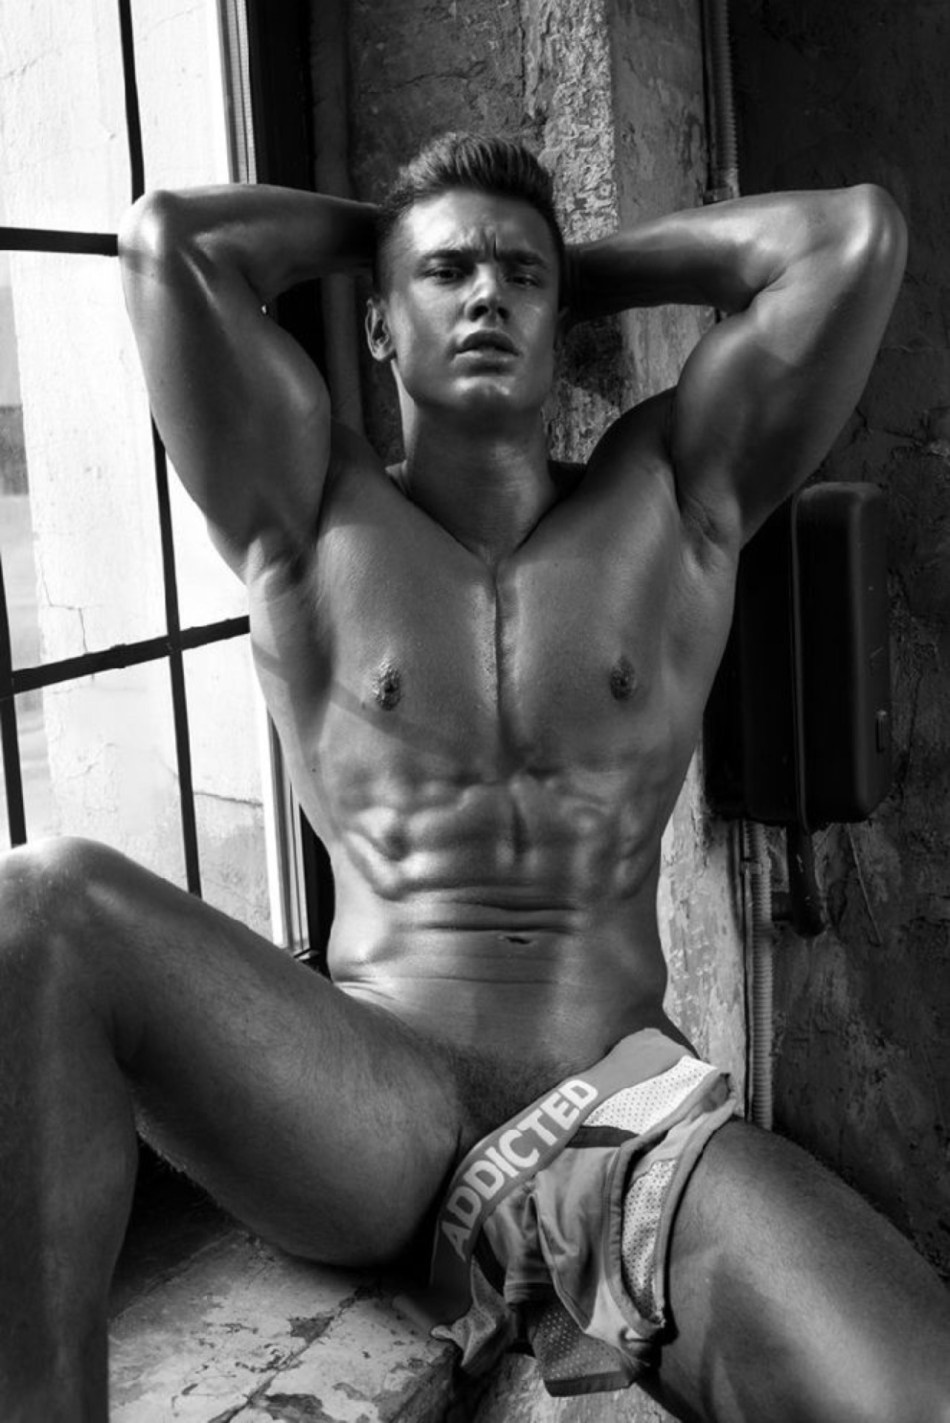 Find out why Russian adonis Alexander Kalmykov is posing in raw hot images captured by Damir Zhukenov.